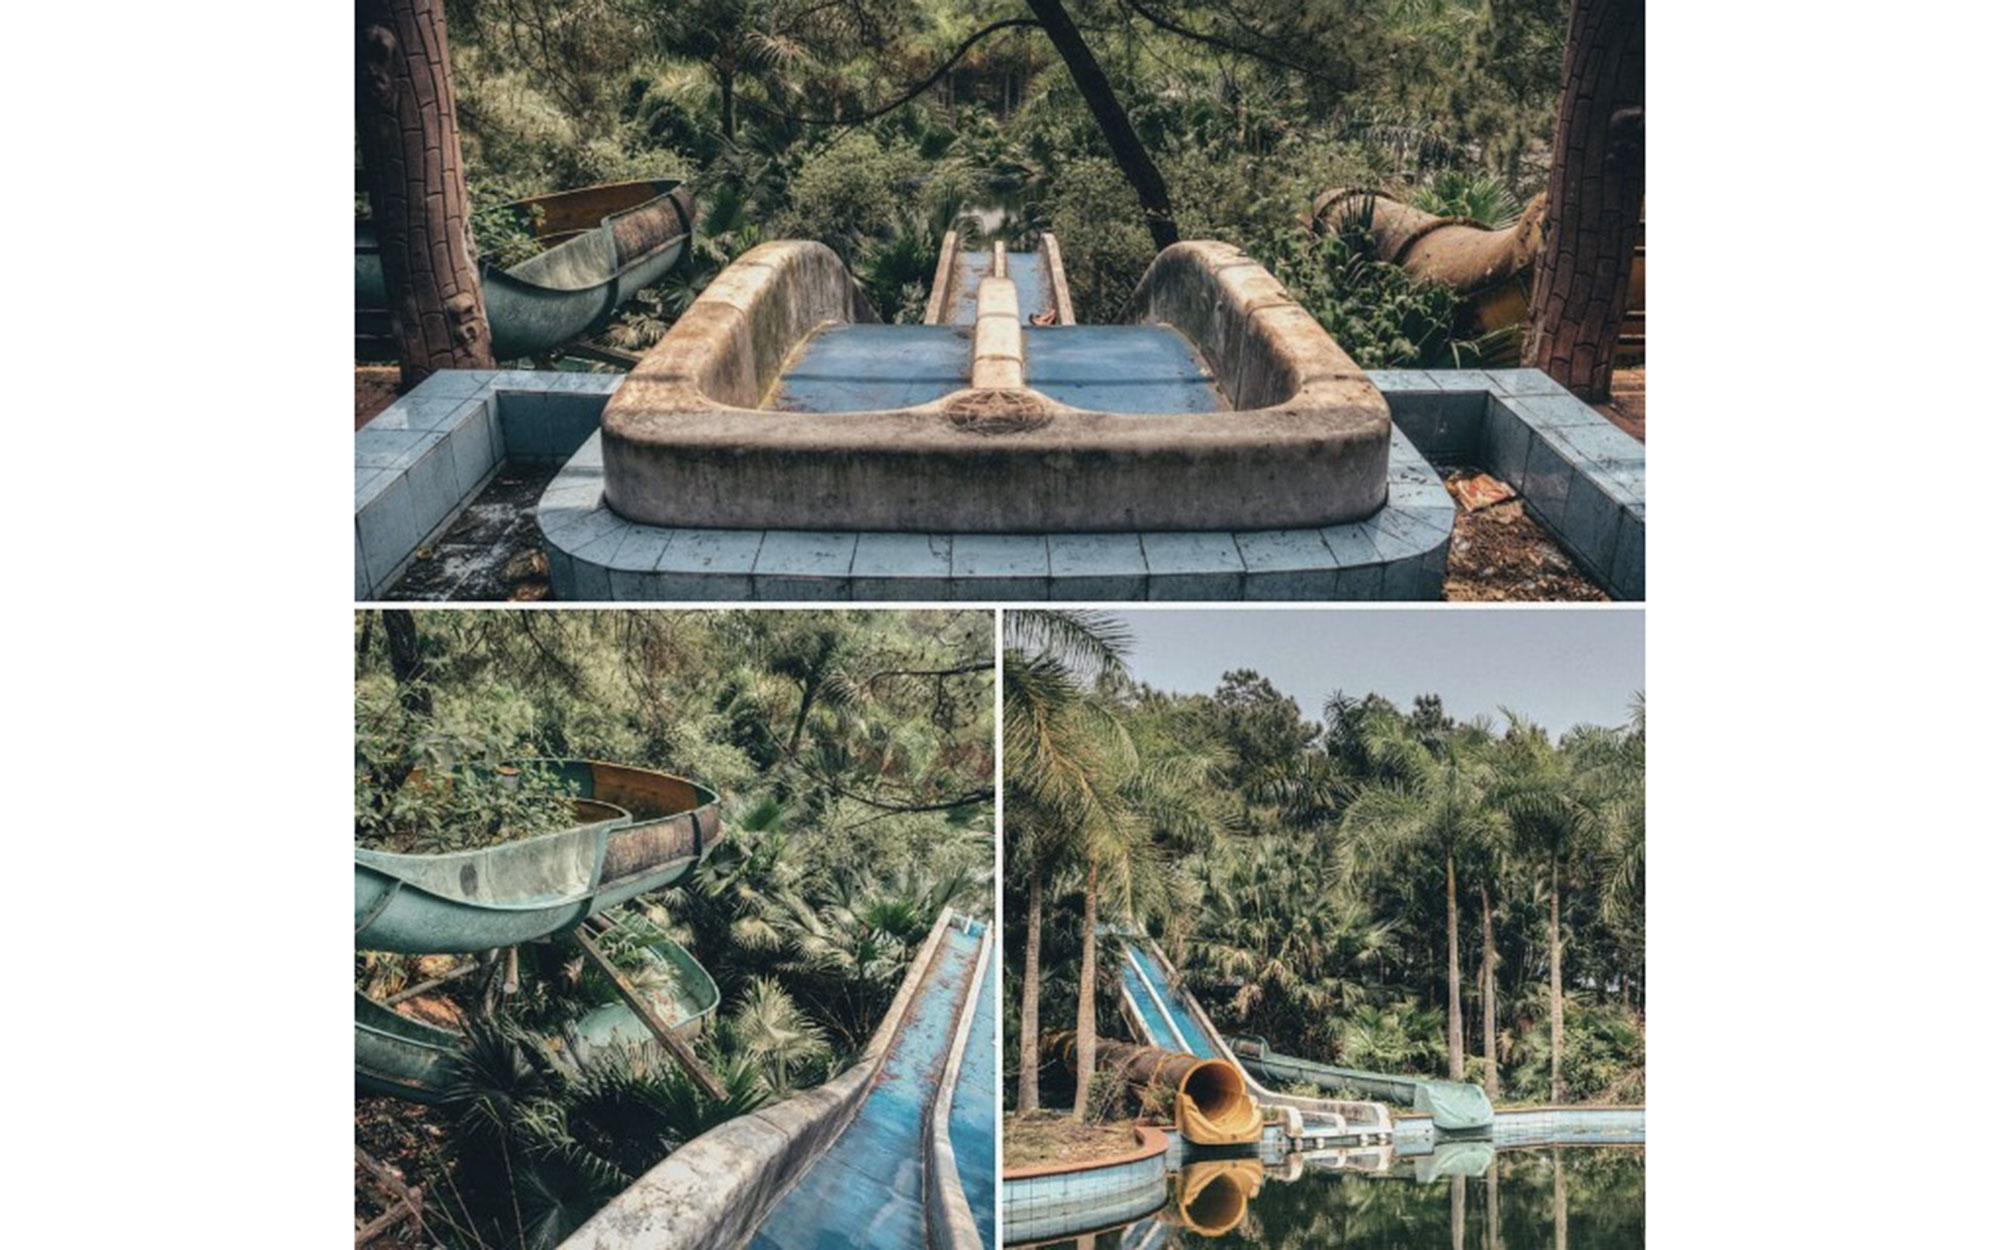 Vietnam Abandoned Waterpark